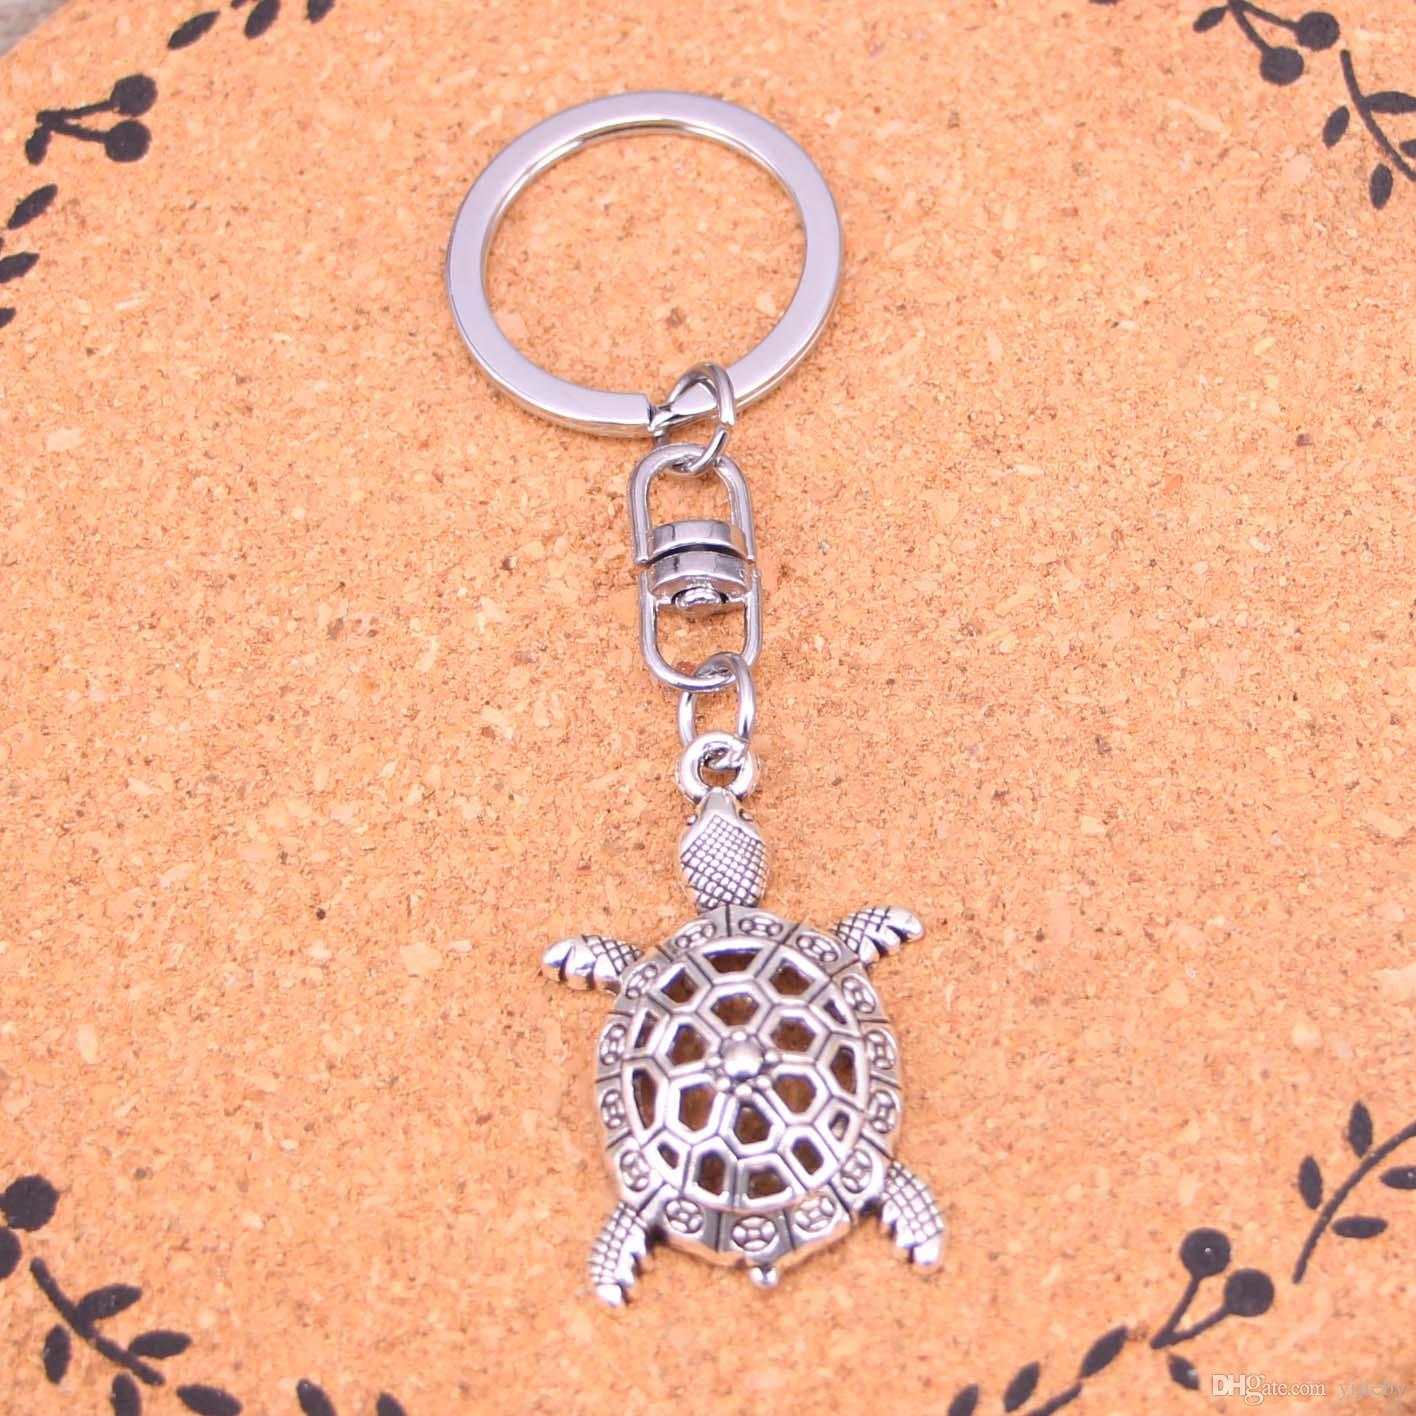 Sea Turtle Keyring Key Ring Gift Animal Lovers Tortoise Souvenir